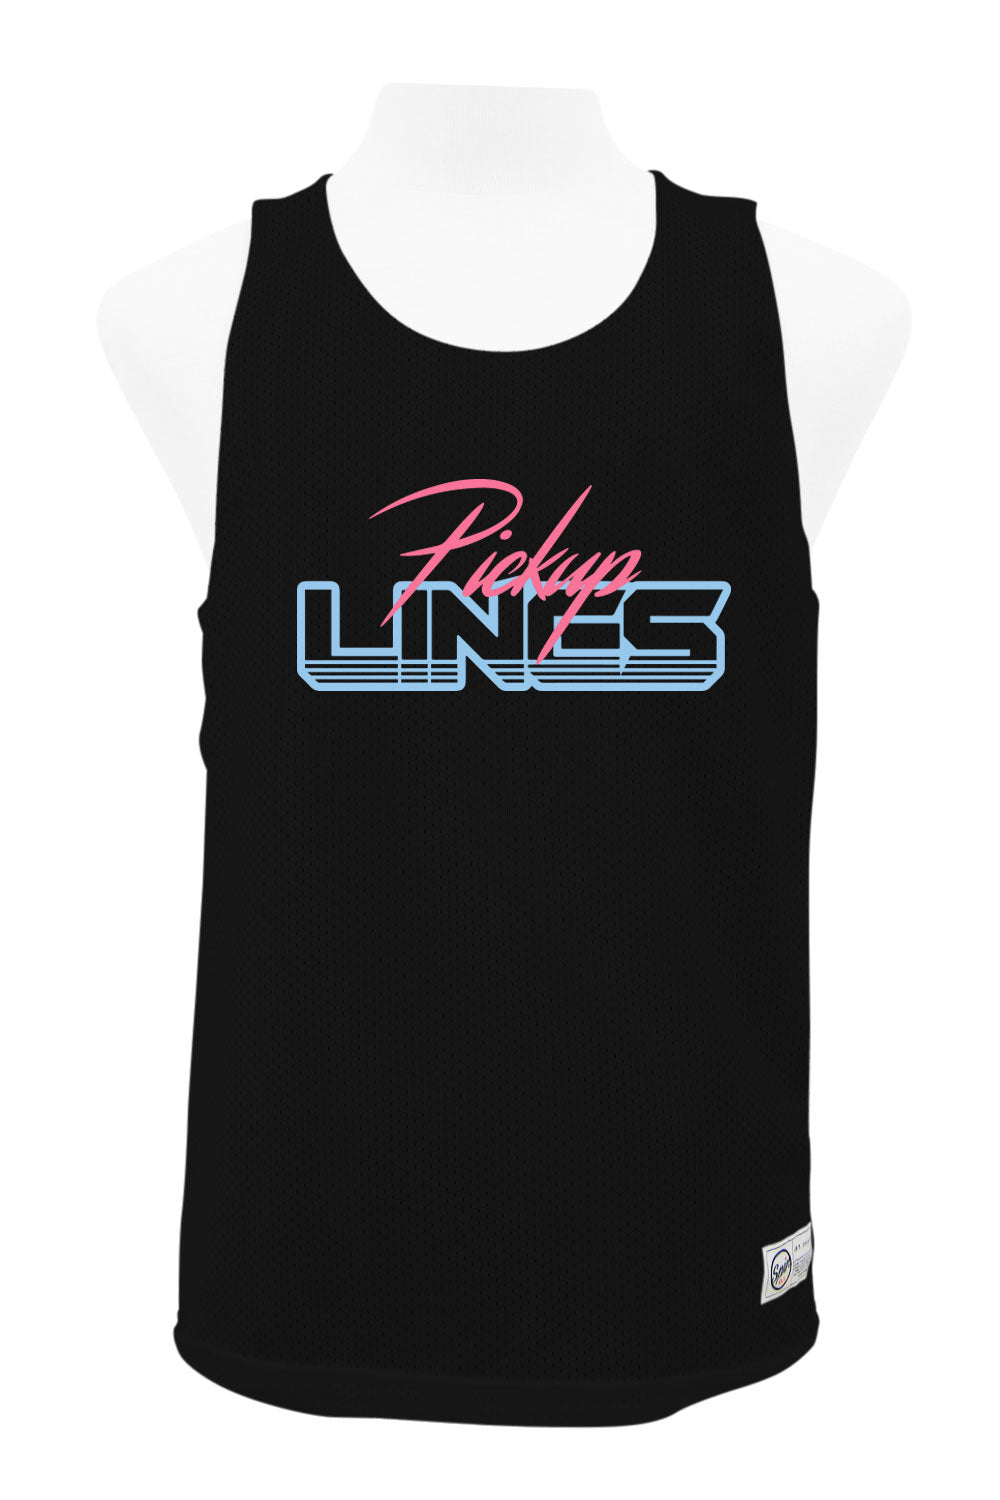 Pick-Up Lines Reversible Tank (Black/White)